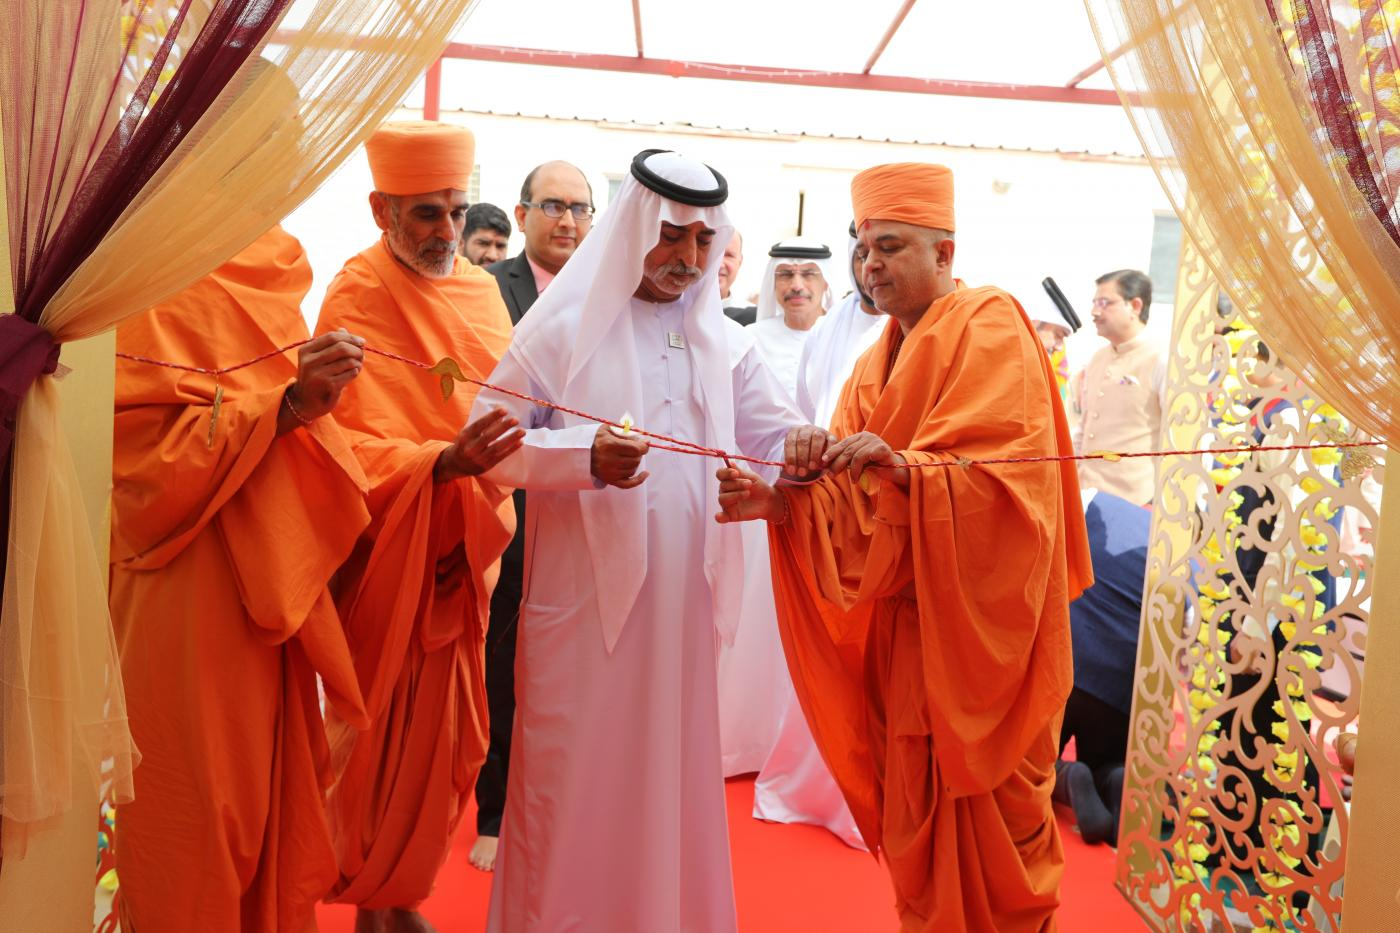 Hindu festival of Diwali-Annakut 2019 was inaugurated by His Excellency Sheikh Nahayan Mabarak Al Nahayan, Cabinet Member and Minister of Tolerance on Friday, November 1, 2019 at 10.45 a.m. on the site of the upcoming BAPS Hindu Mandir in Abu Murreikah